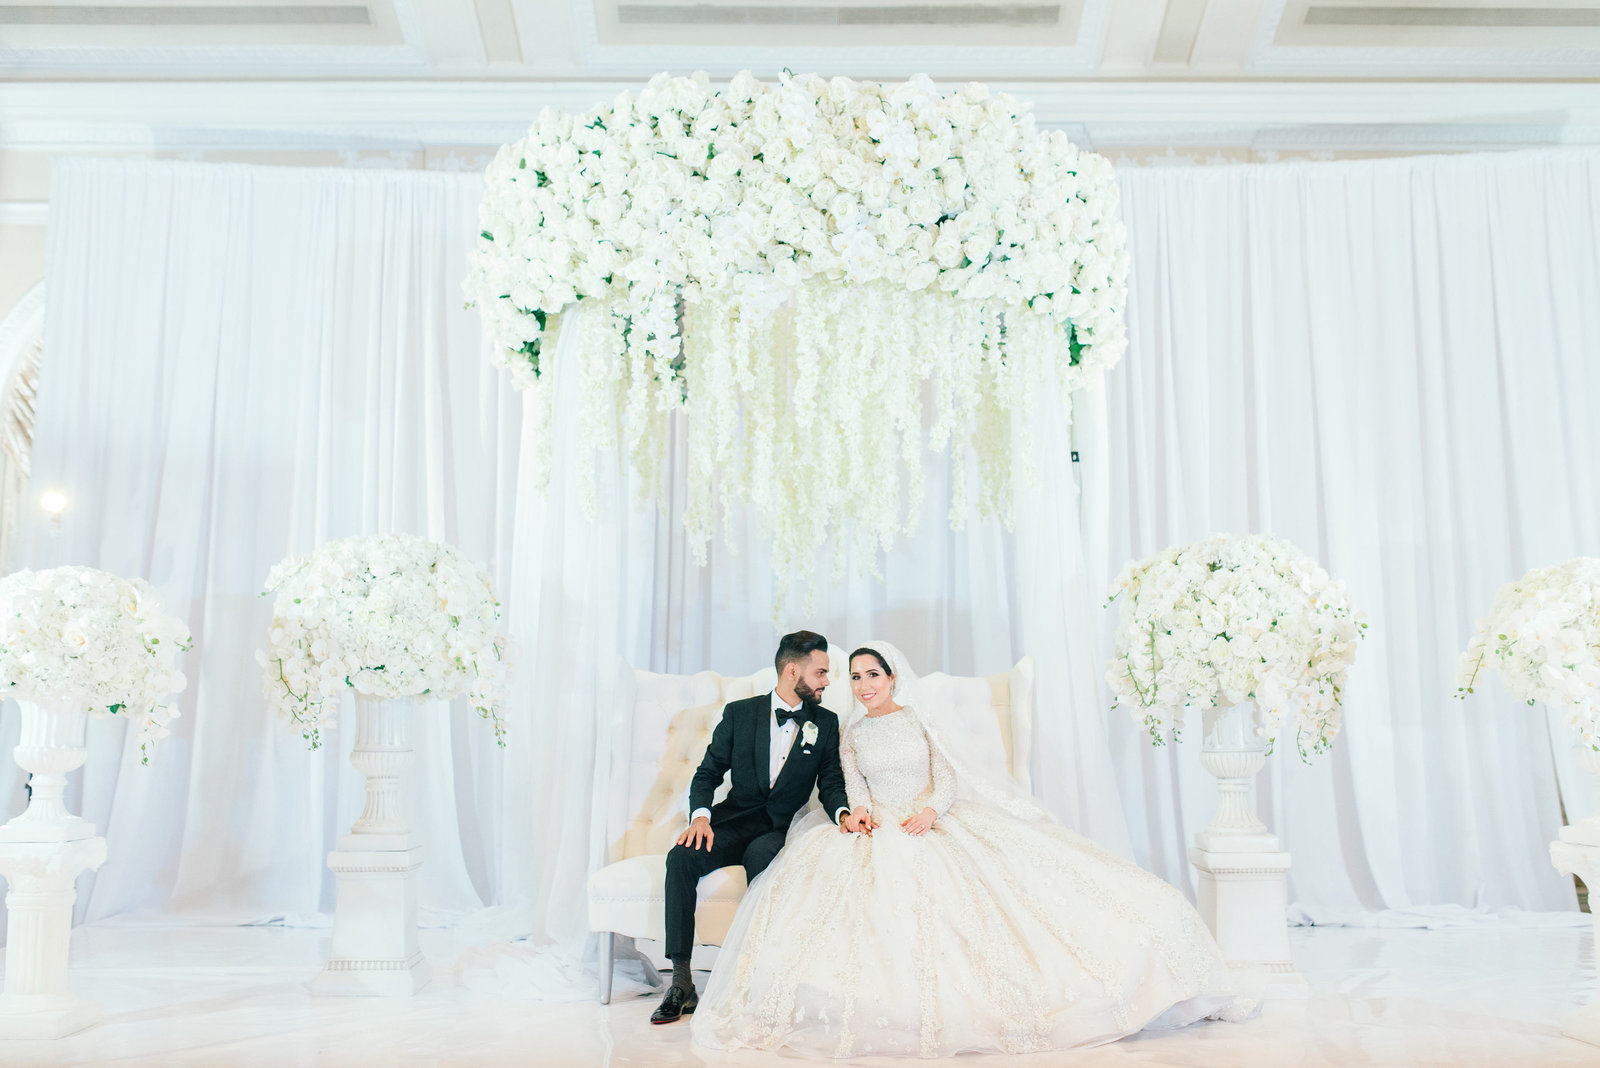 LTPNoor & Ahmad Vinoy Renaissance Wedding in St. Petersburg by Ledia Tashi Photography_7896